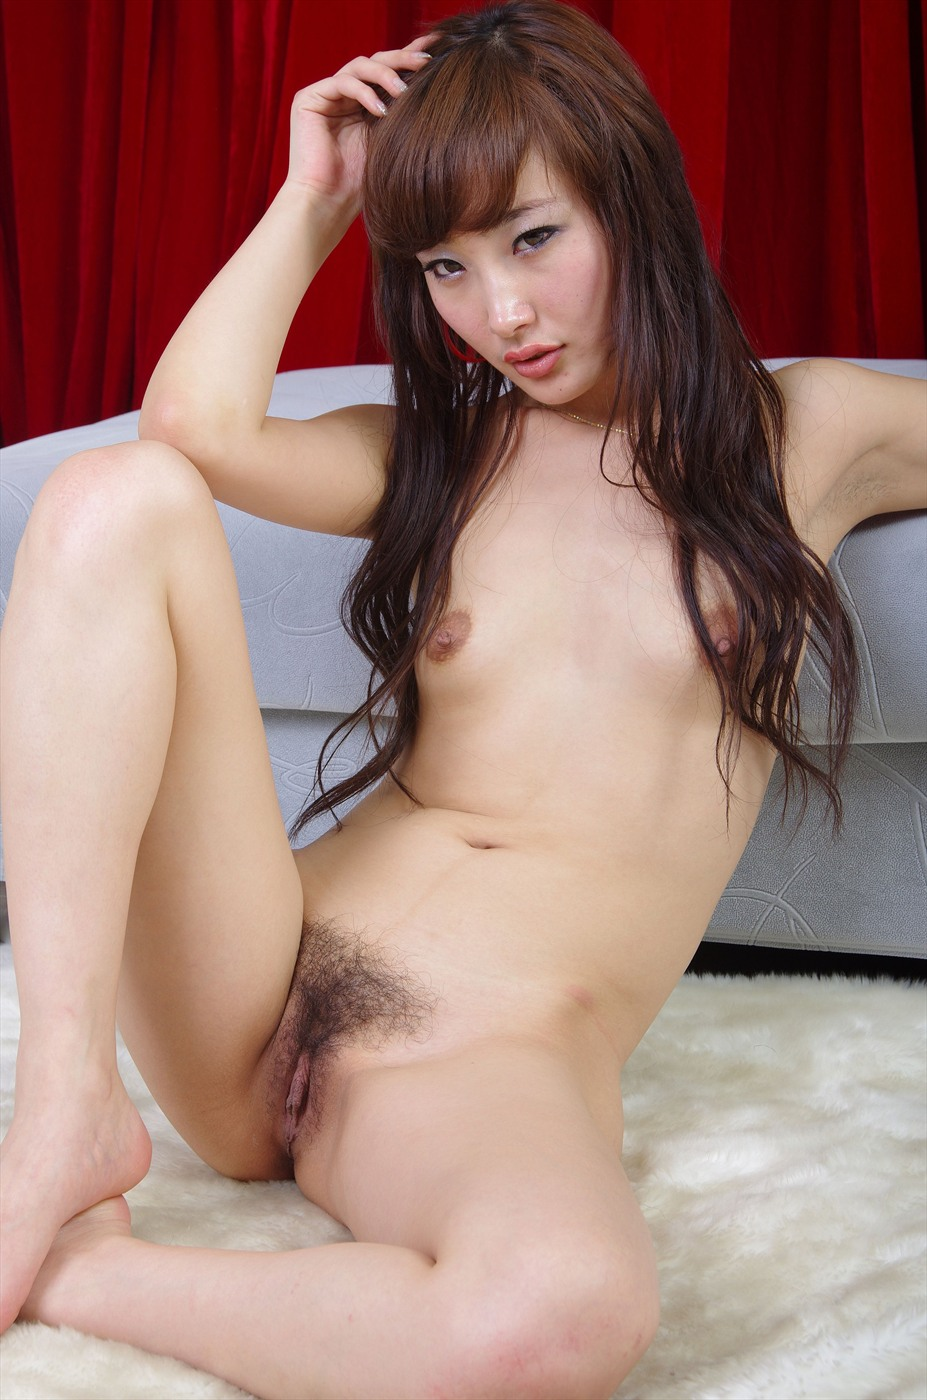 Hairy girls nude korean